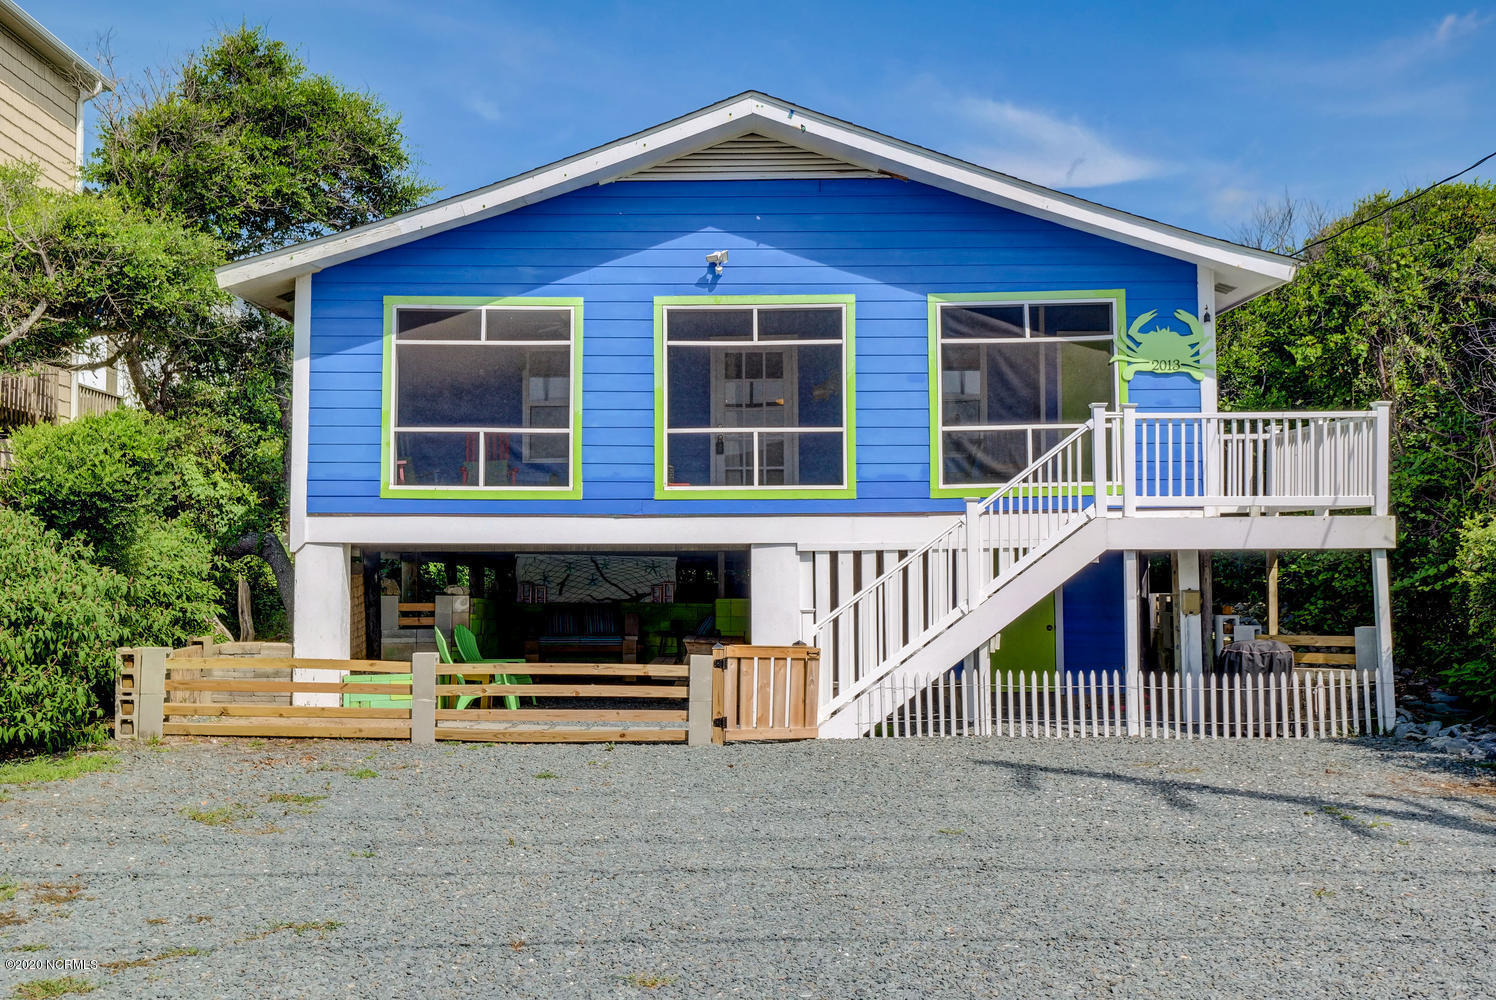 2013 Shore Drive Drive, Surf City, North Carolina 28445, 3 Bedrooms Bedrooms, ,2 BathroomsBathrooms,Residential,For Sale,Shore Drive,100227763